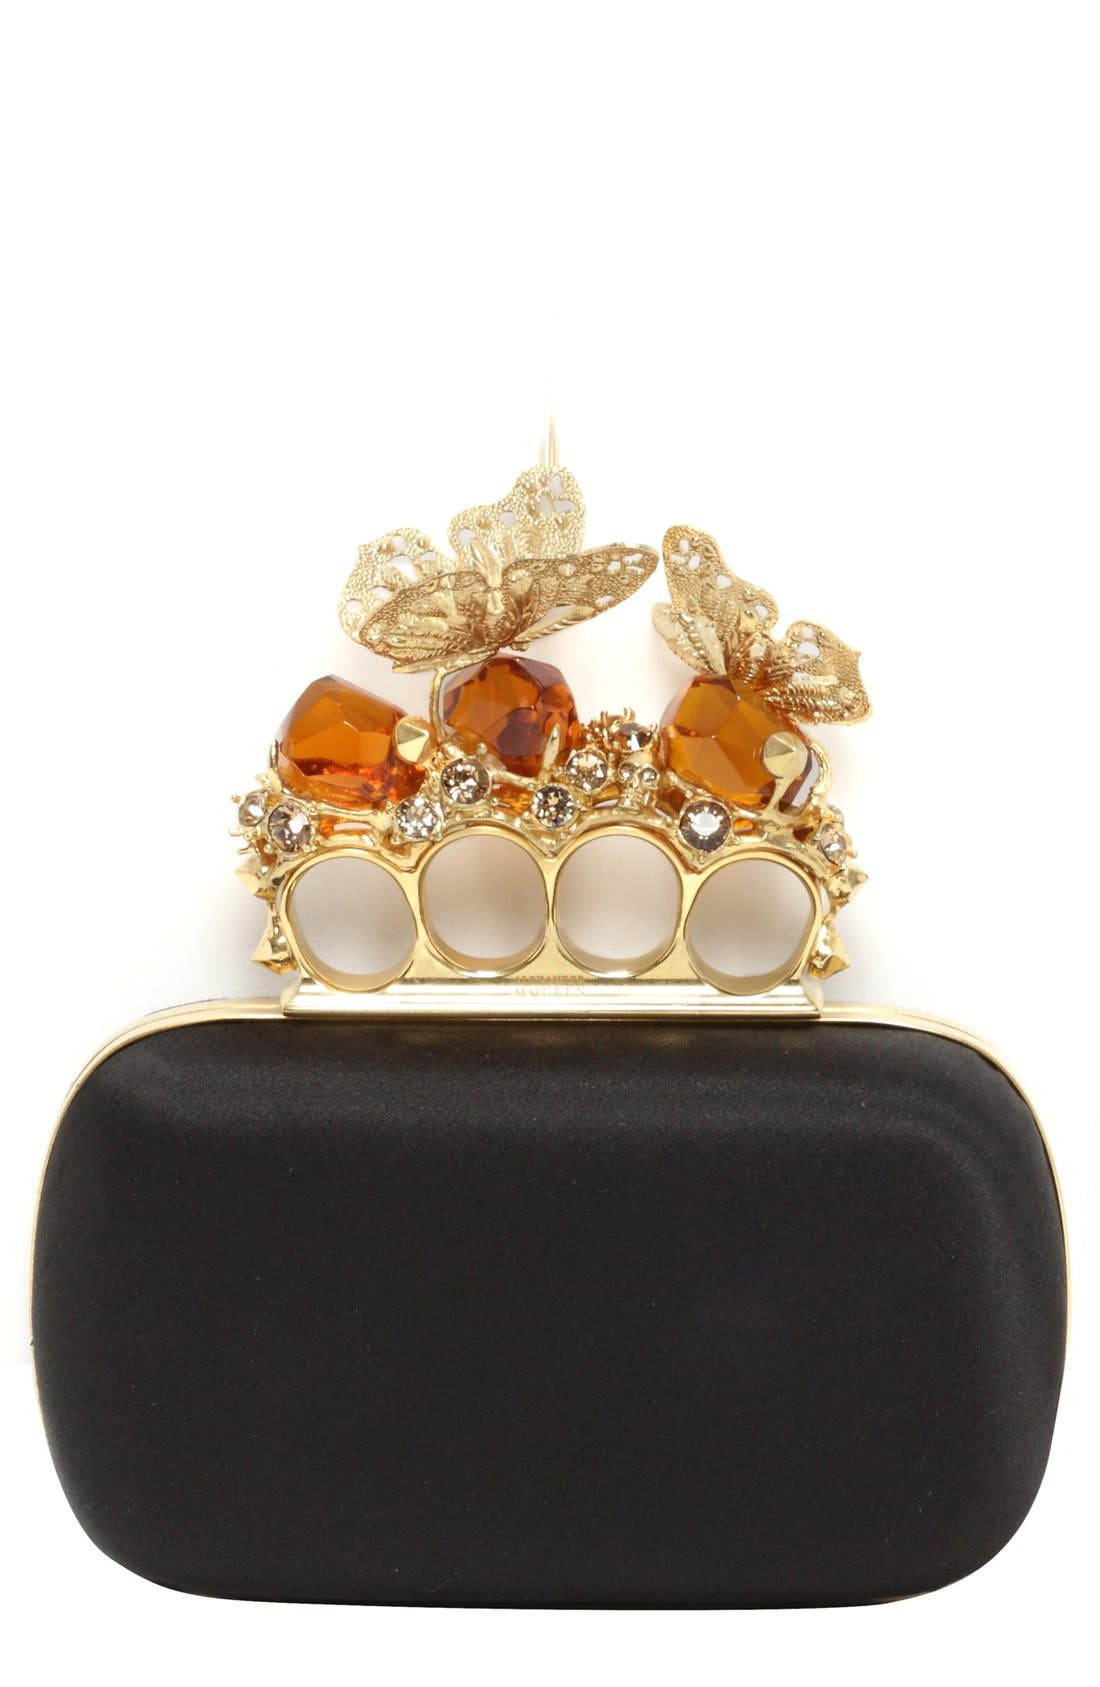 Main Image - Alexander McQueen 'Butterfly  Knuckle Clasp' Clutch